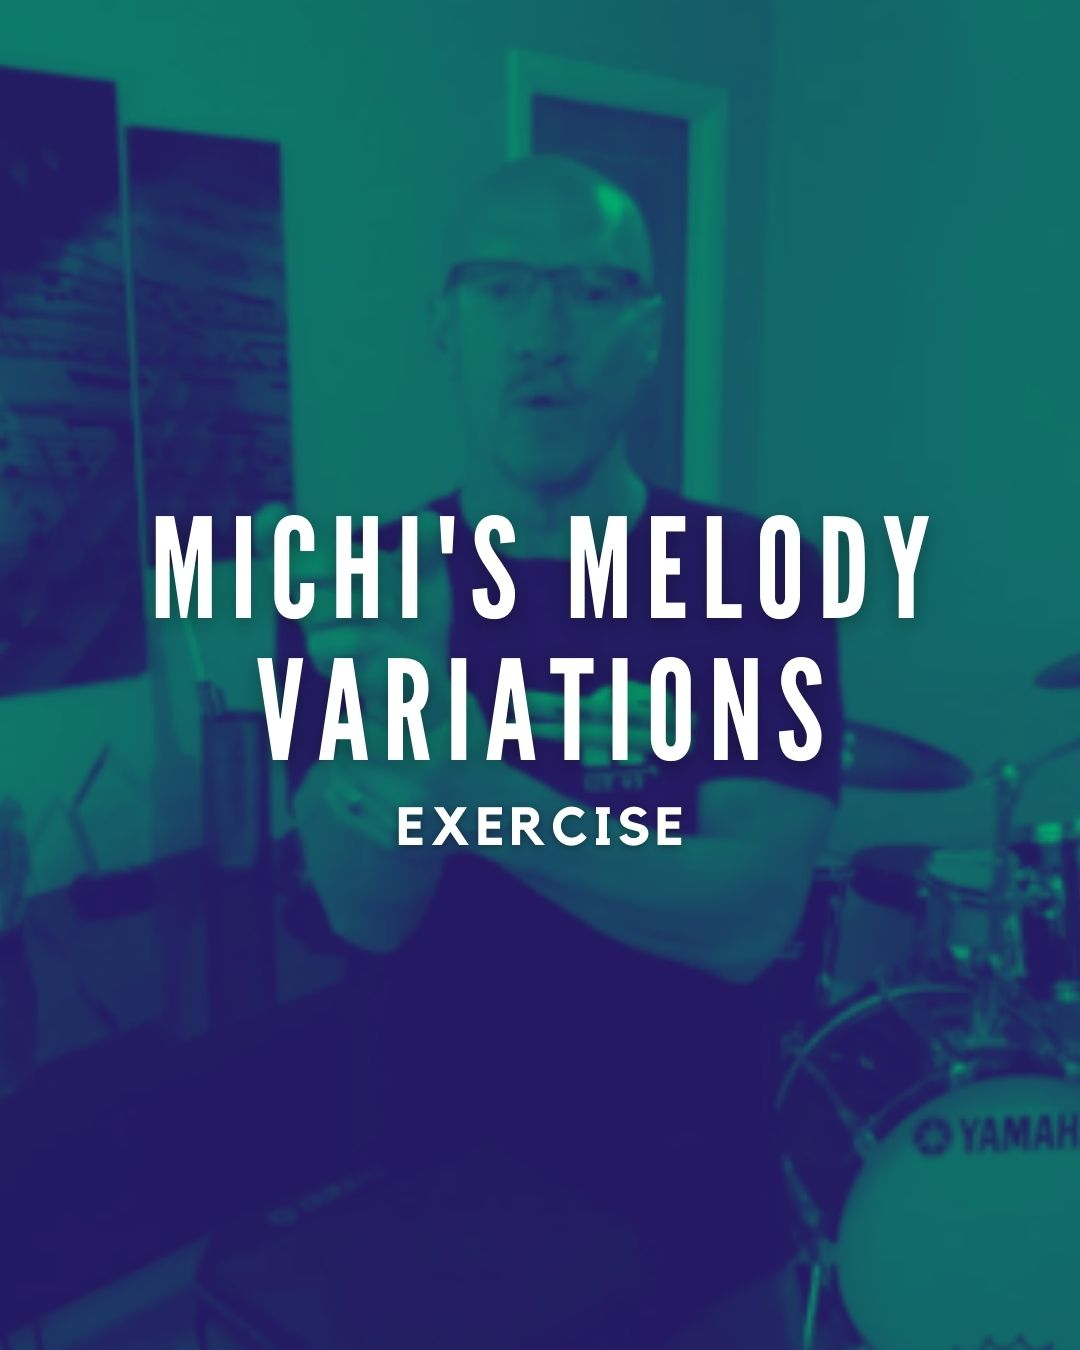 Michi's Melody Variations